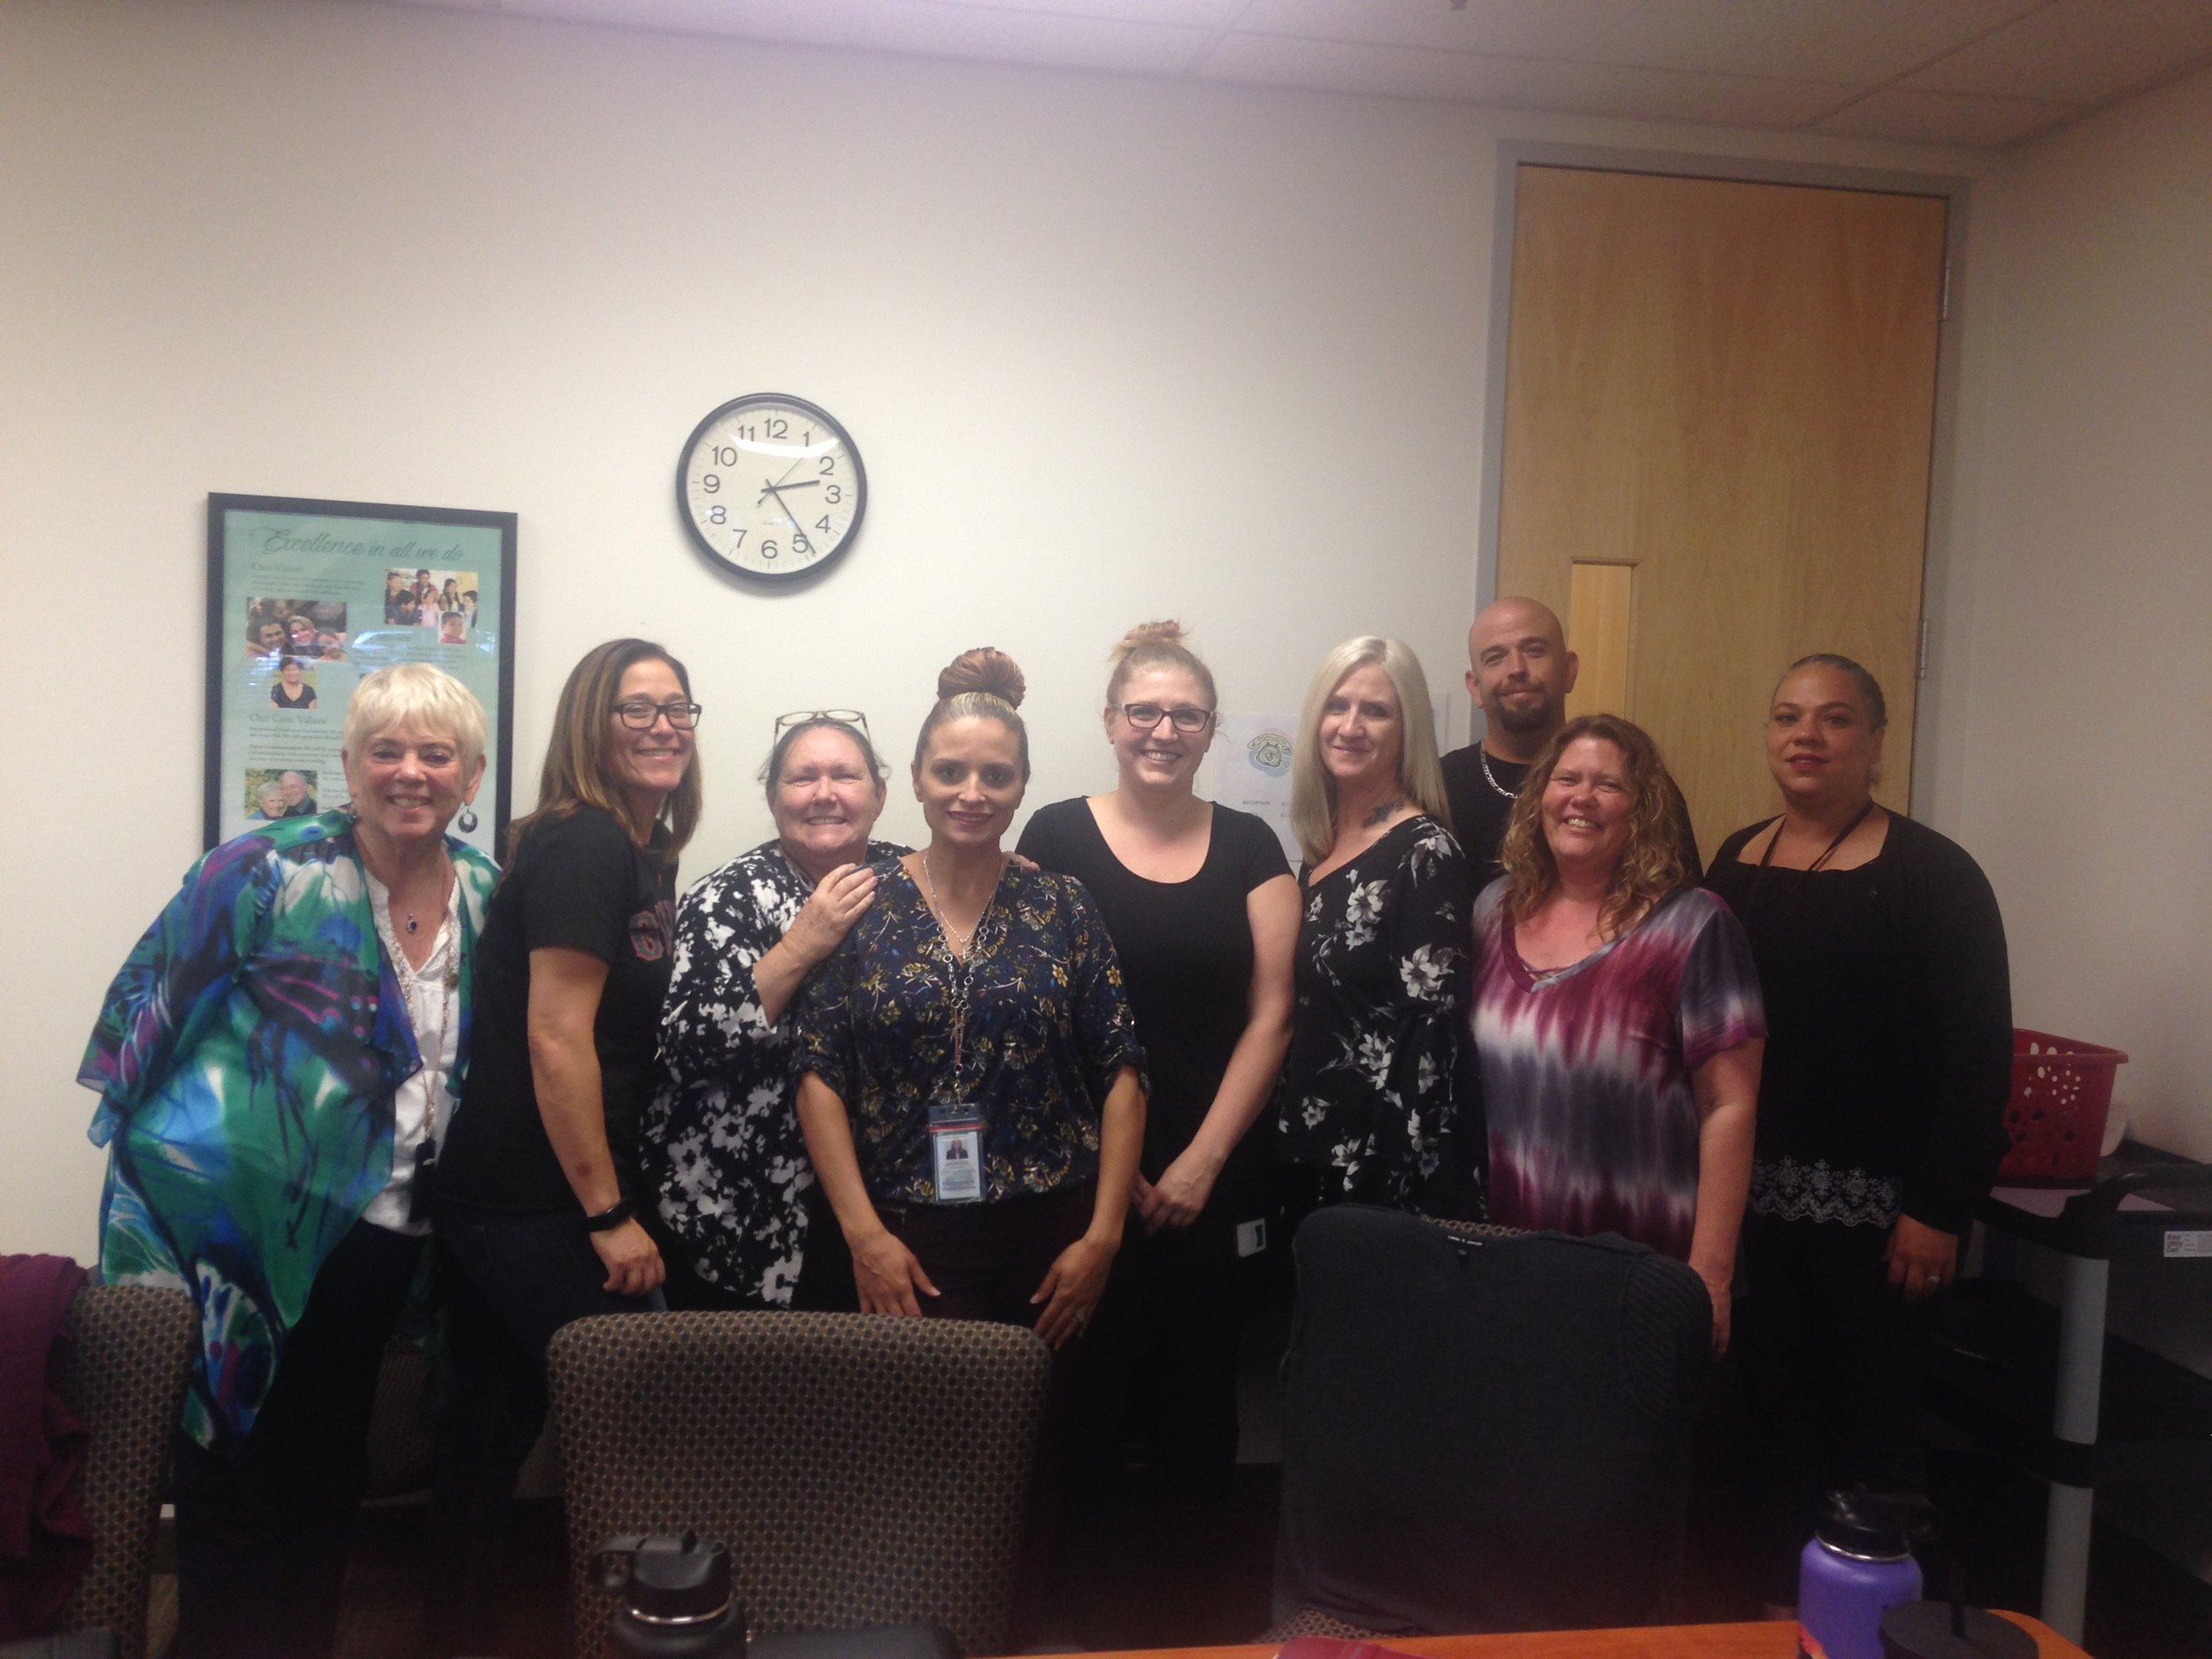 The family engagement unit in Contra Costa County, Northern California (Judi, Sunita, Cheryl, Joanie, Sarah, Gina, Dave, Heather and Melissa). The team is made up of 2 drug and alcohol peer mentors and the rest are parent partners - parents with a lived experience of child removal and successful restoration. The team is led by social worker Judi and they work directly with parents to support early and safe restoration.